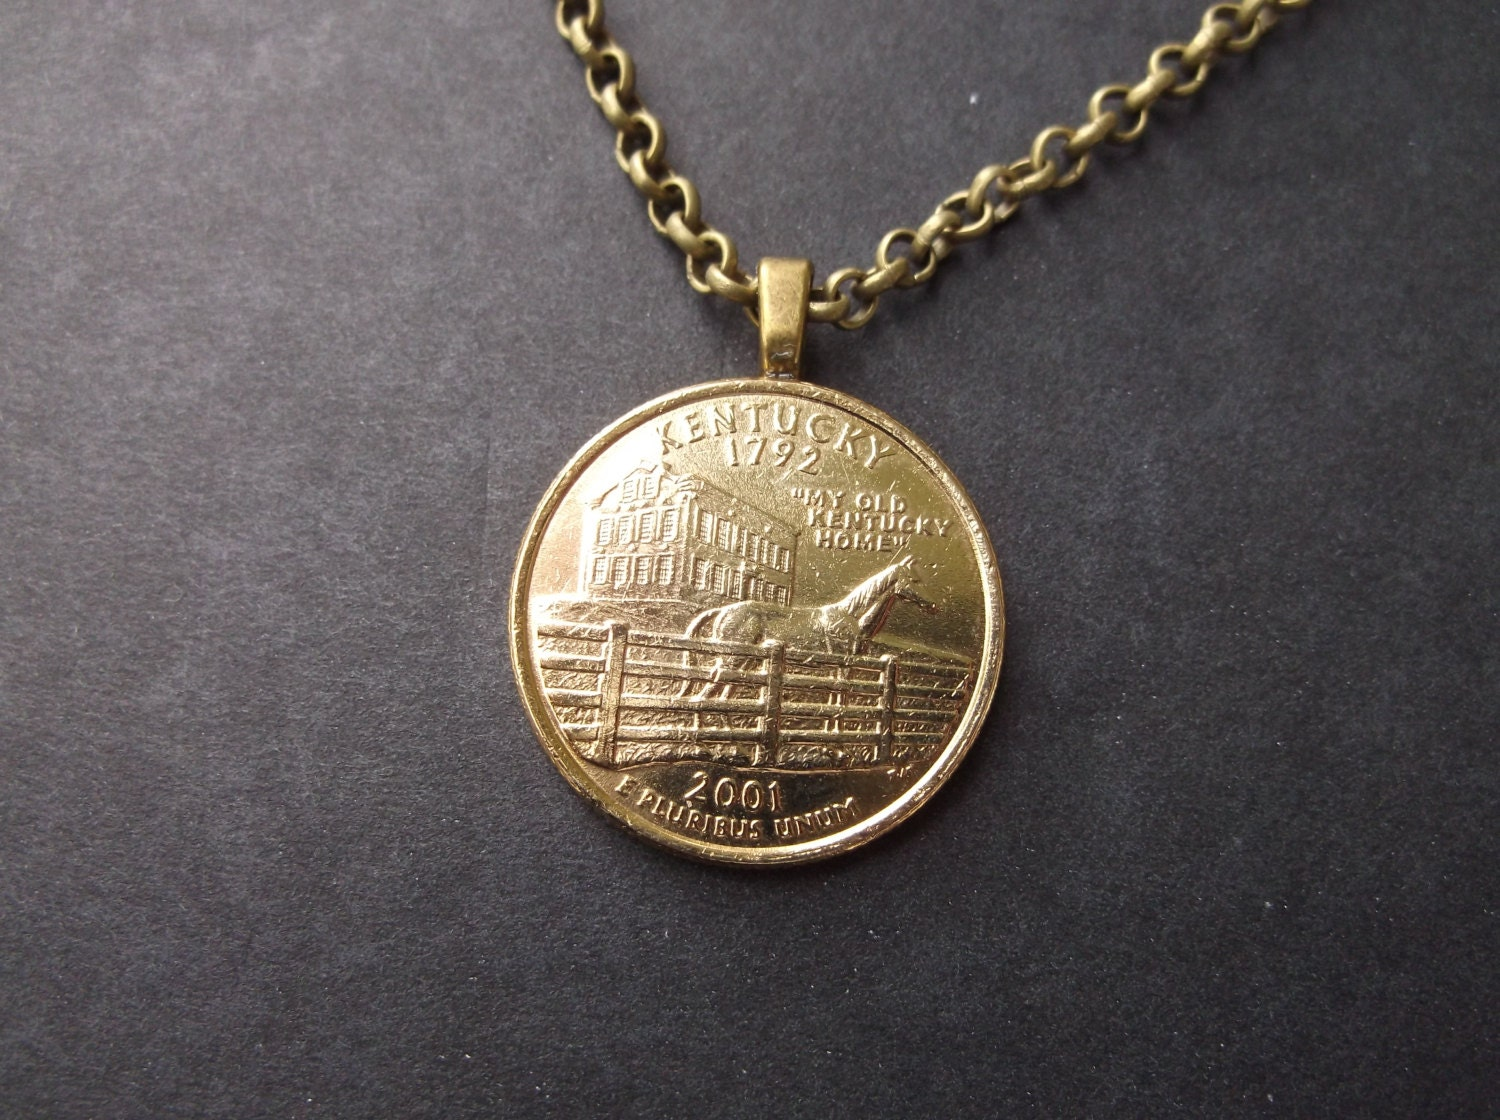 Kentucky United States Gold Colored Quarter Coin Necklace